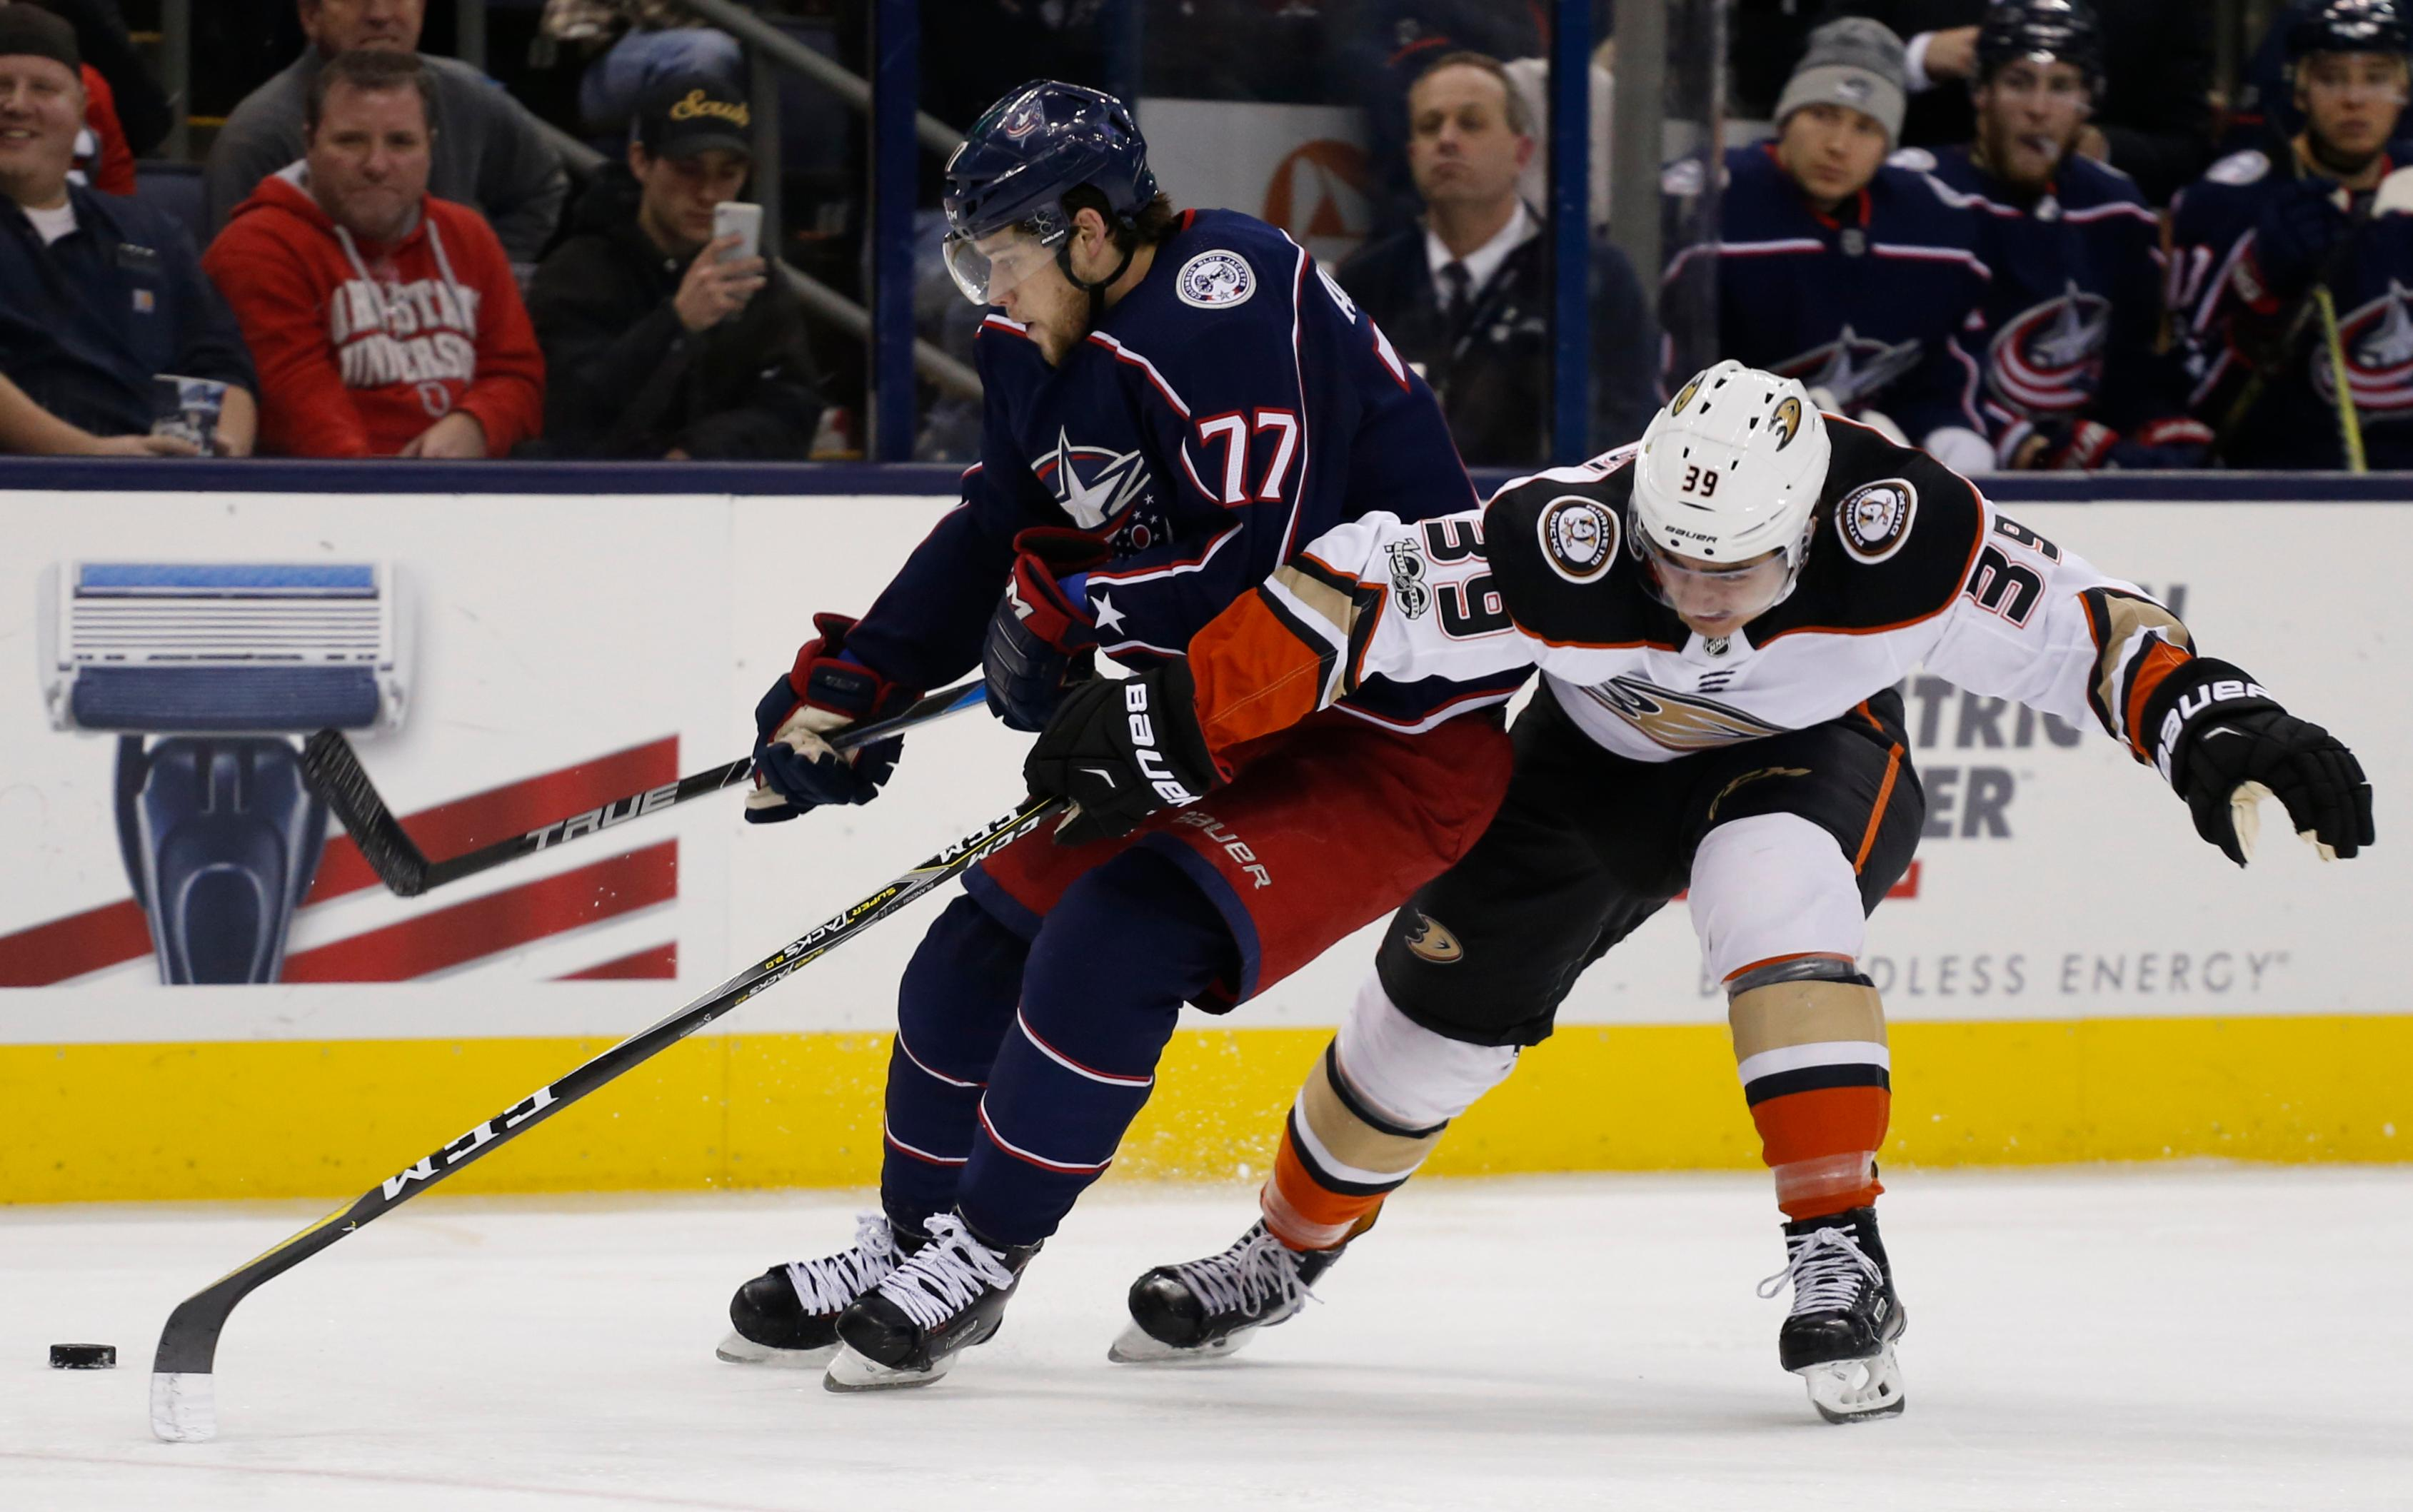 Columbus Blue Jackets' Josh Anderson, left, carries the puck upice as Anaheim Ducks' Joseph Blandisi defends during the second period of an NHL hockey game Friday, Dec. 1, 2017, in Columbus, Ohio. (AP Photo/Jay LaPrete)